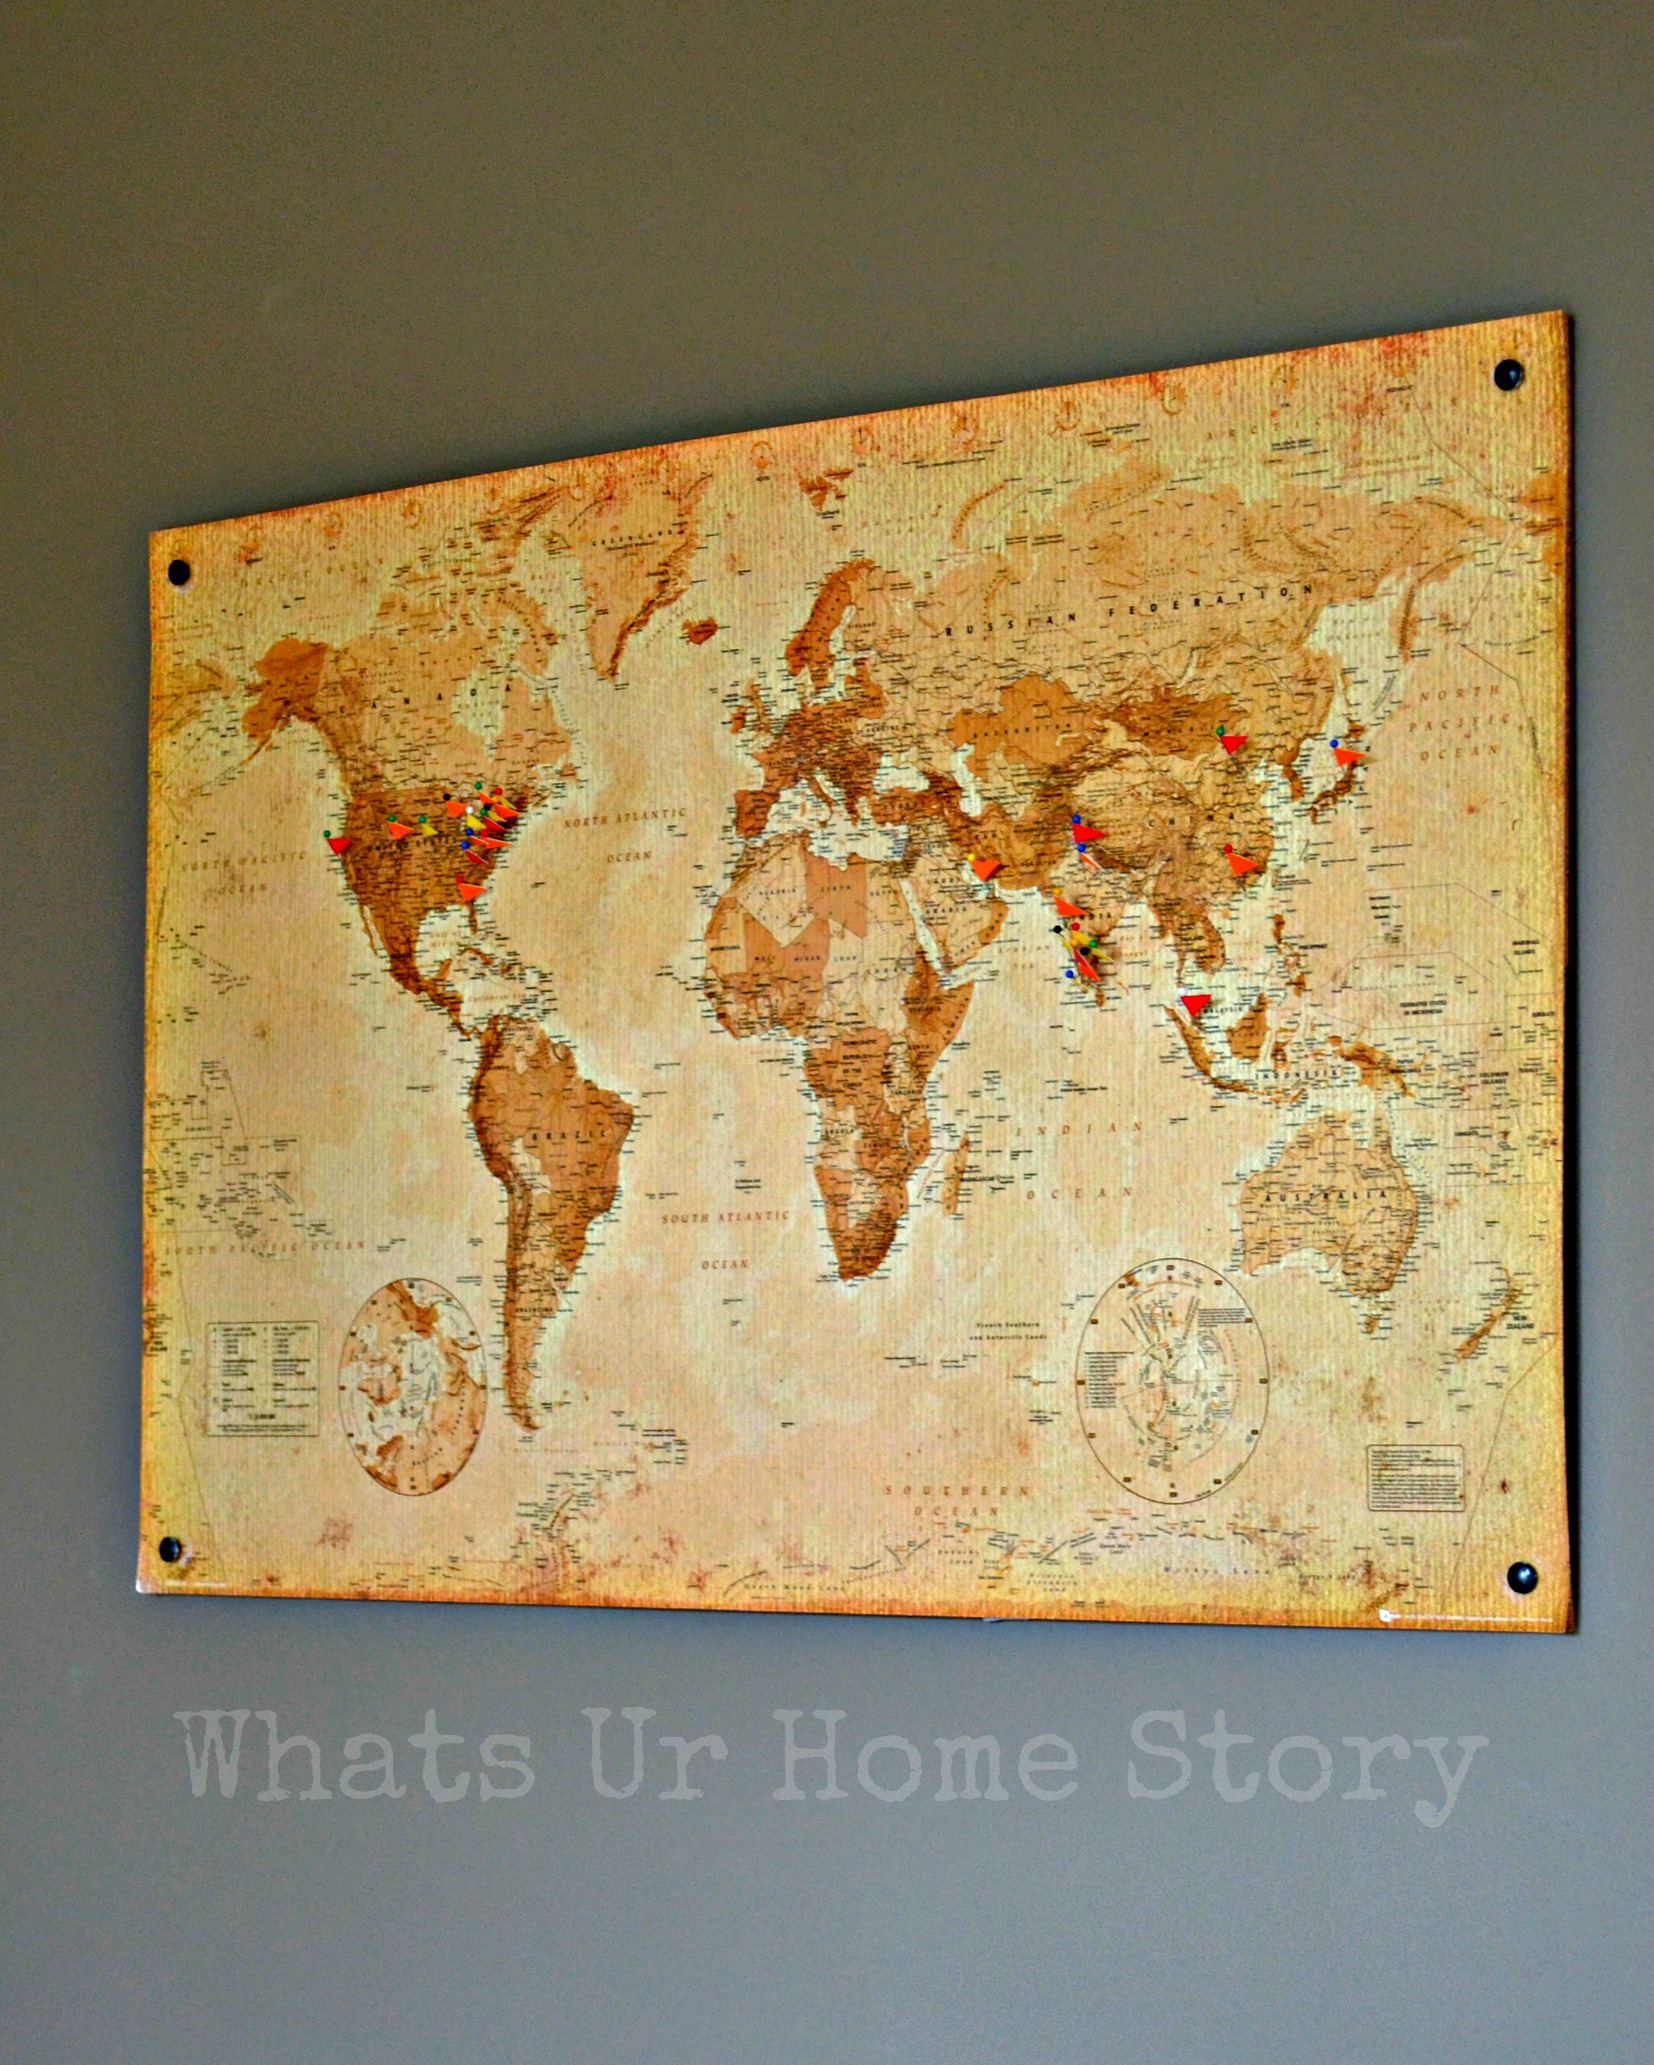 Diy cork board map whats ur home story for Diy cork board